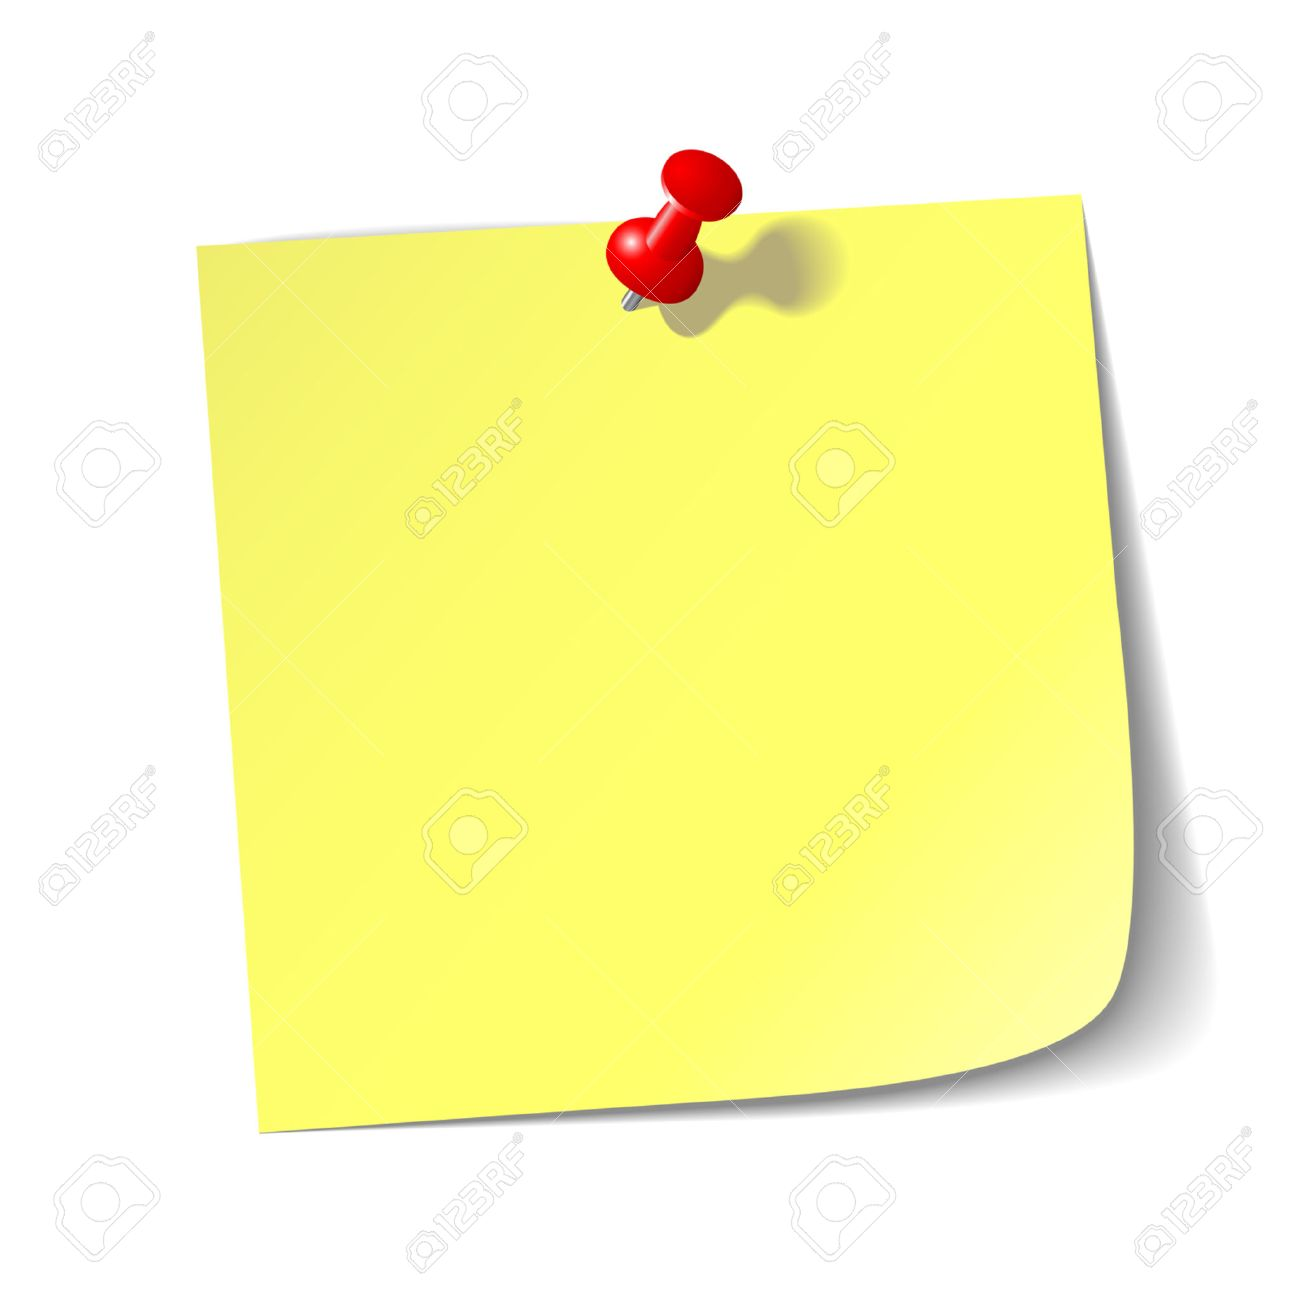 Post It, Note, Letter, Sticky Note, Remind, Message, Communication